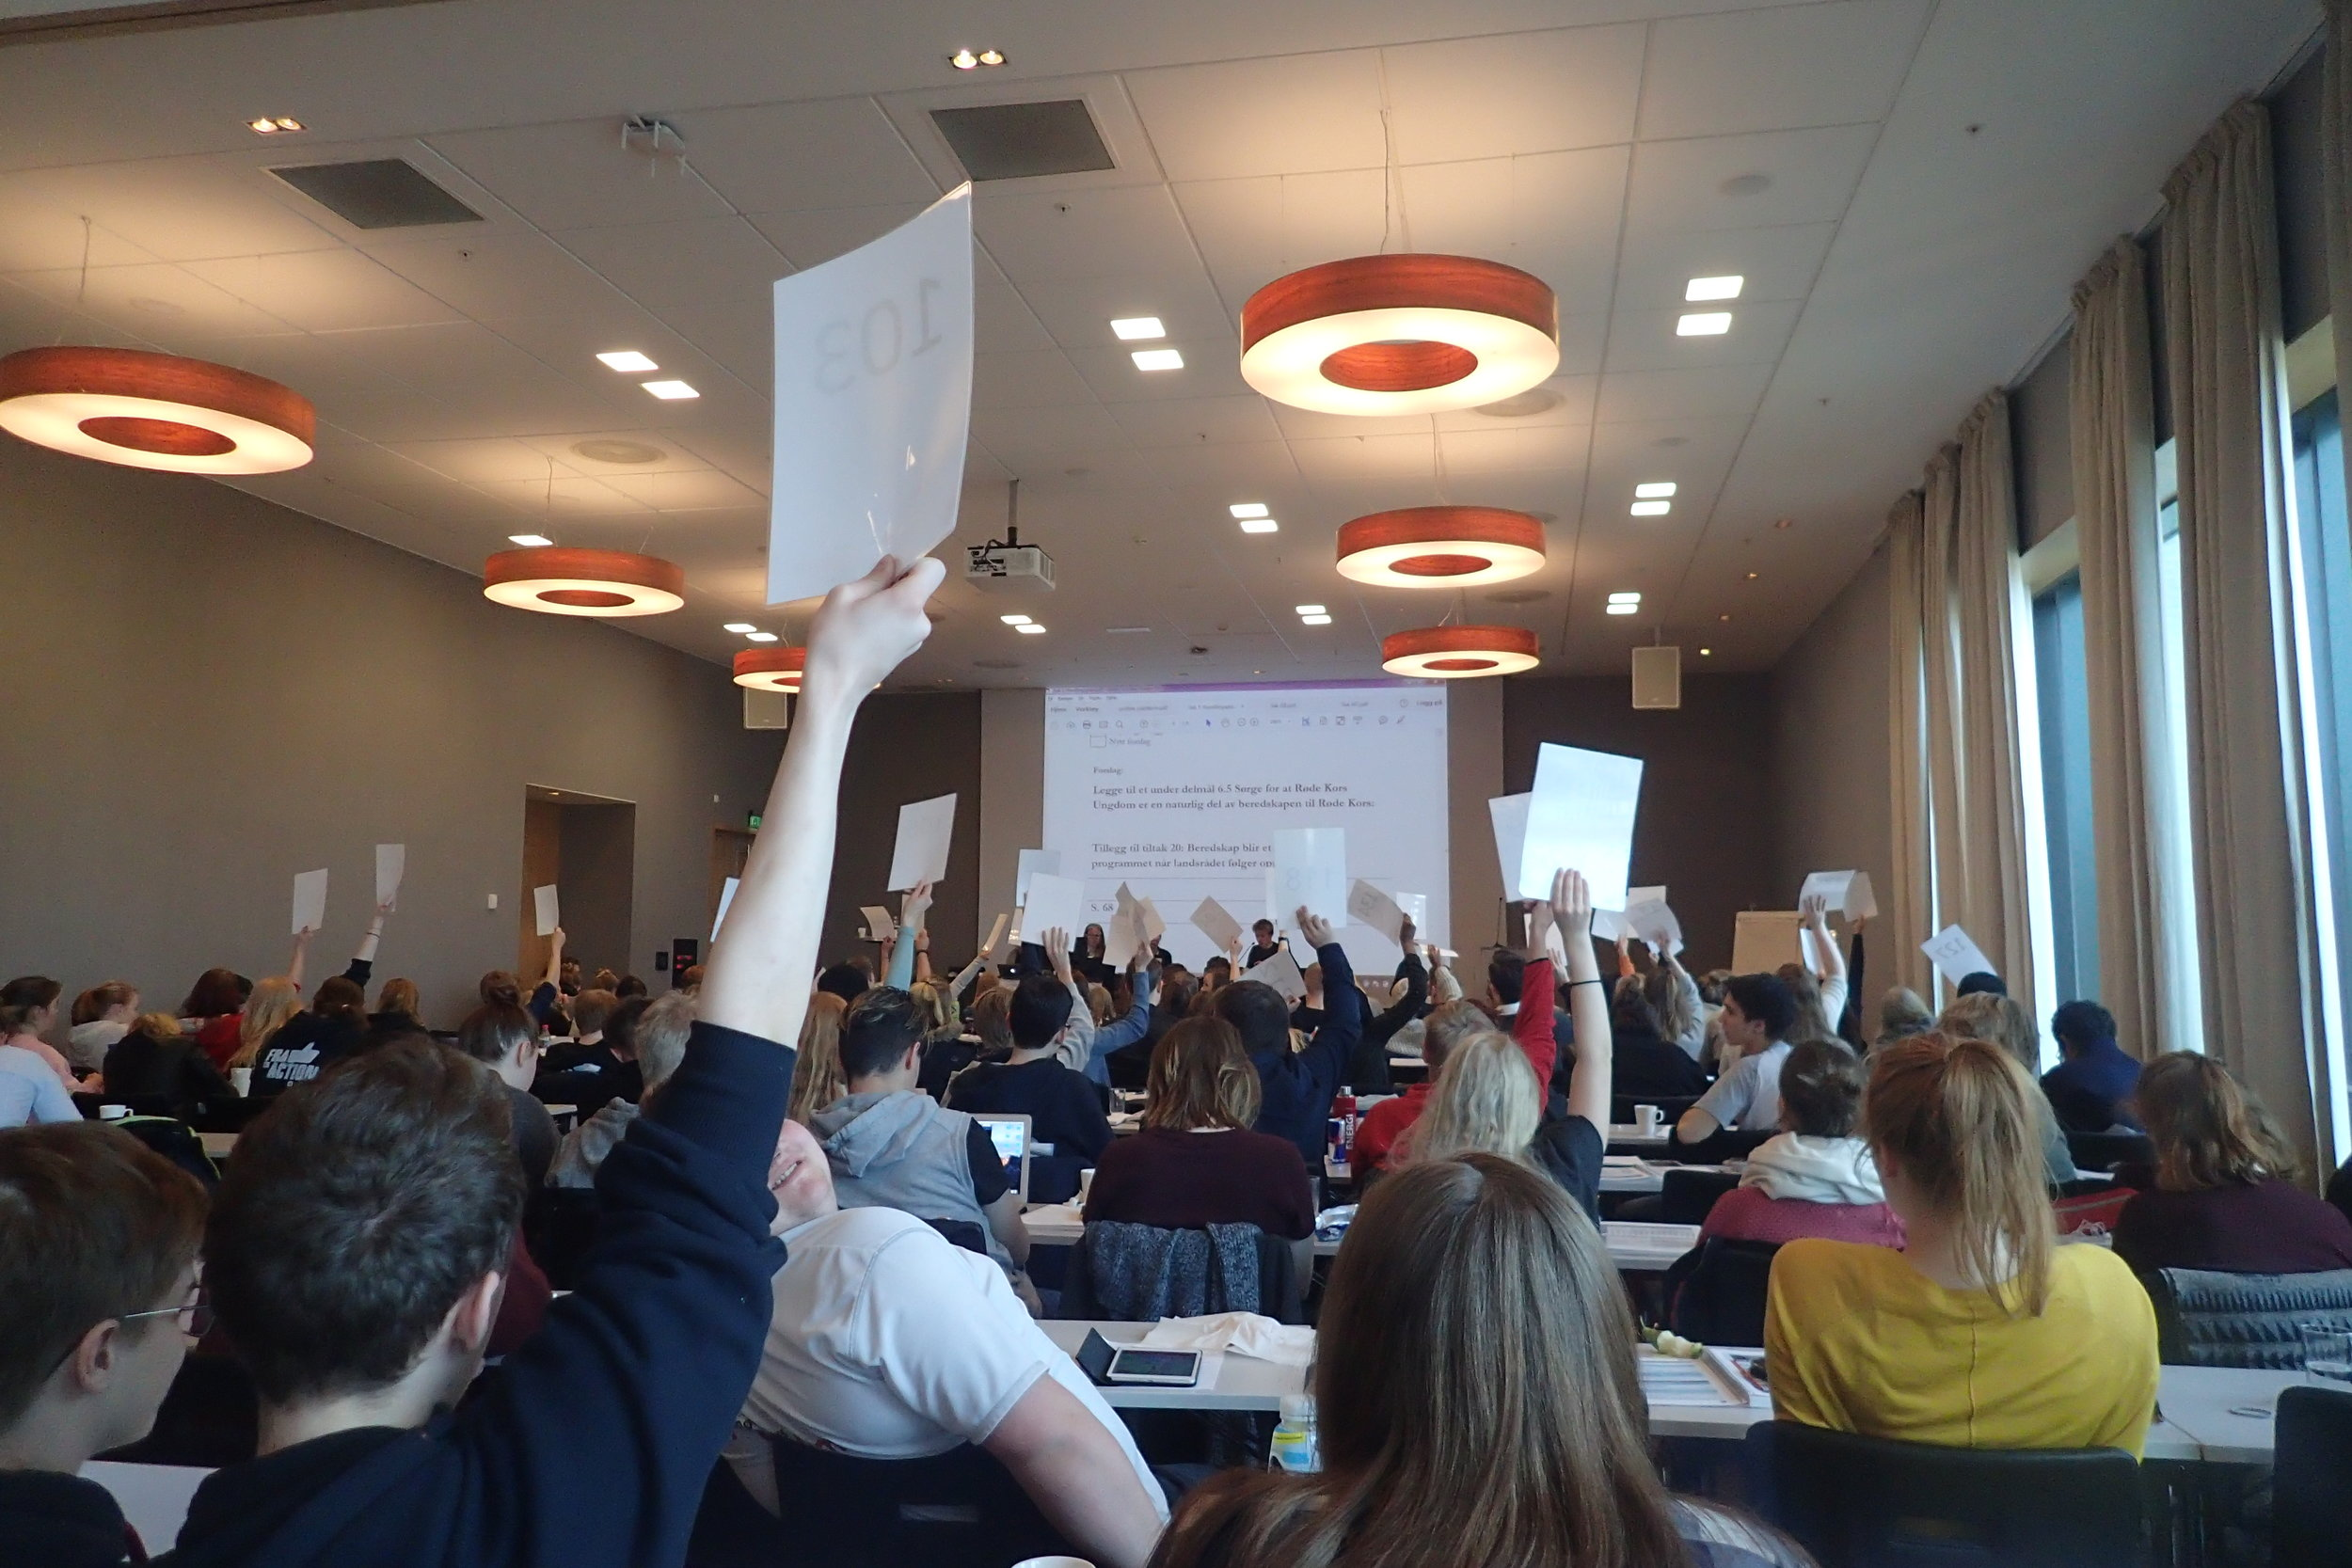 Delegates voting during the election of Country Council